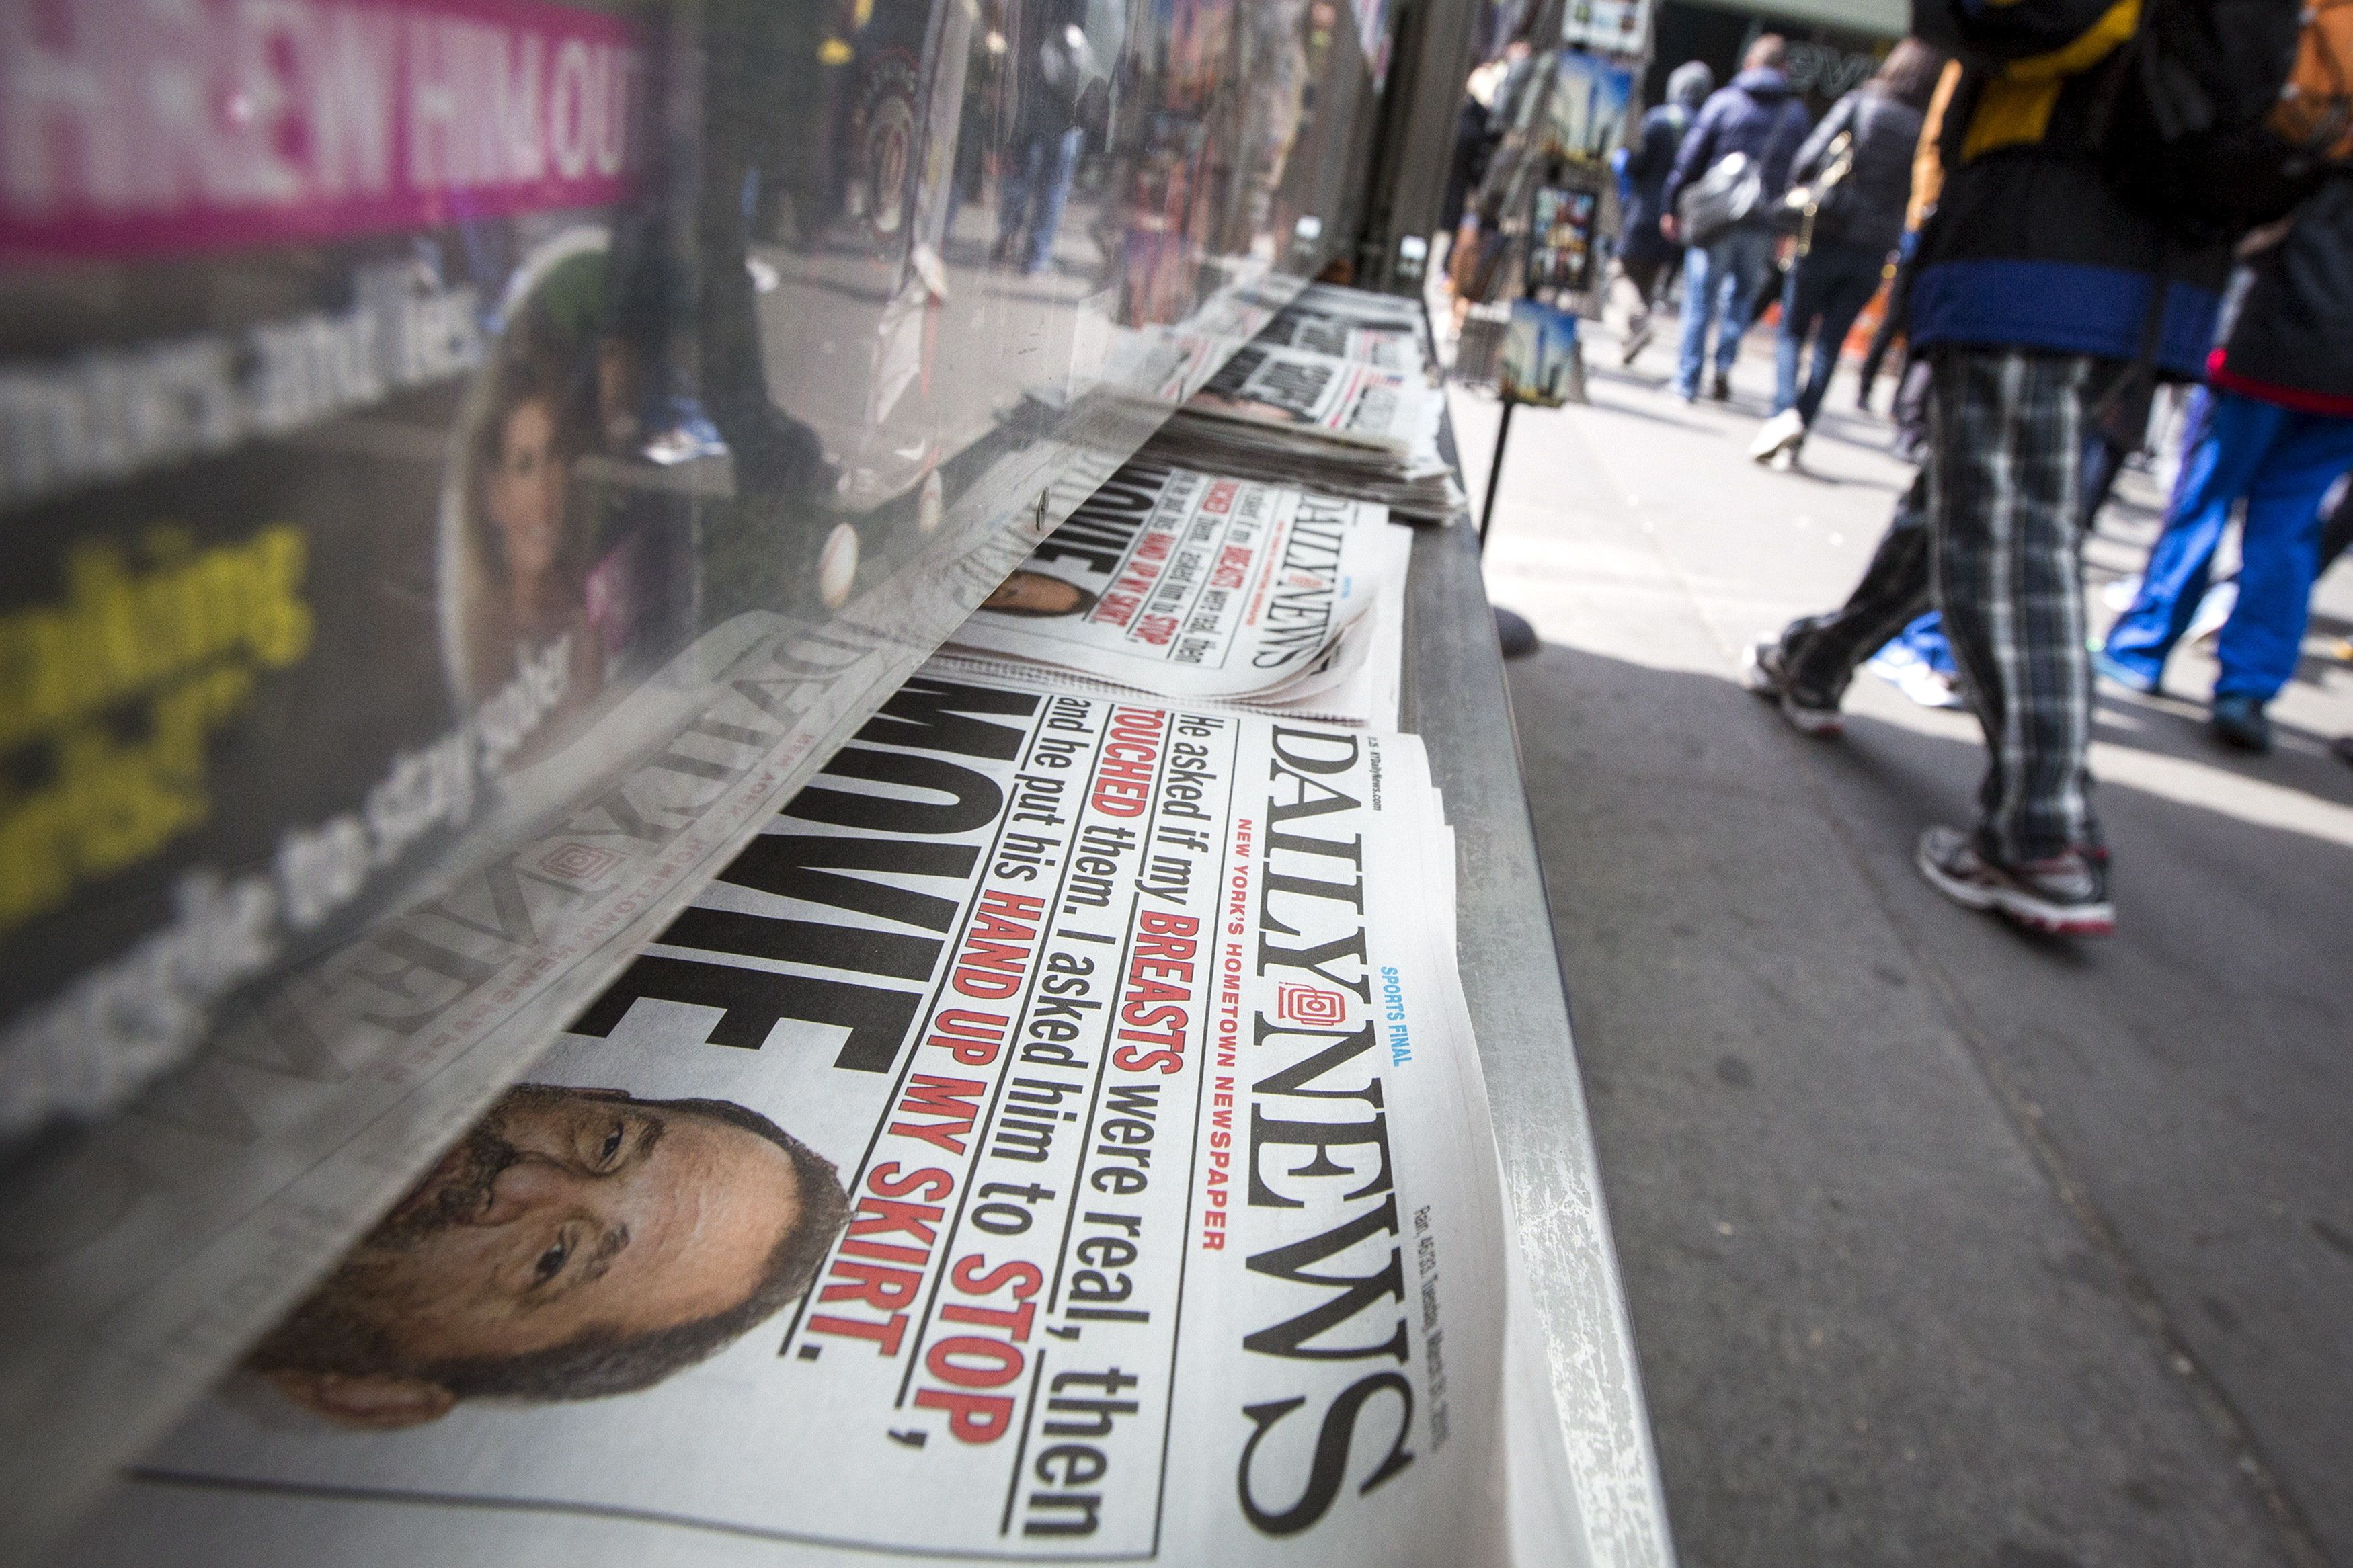 The Daily News has a new owner